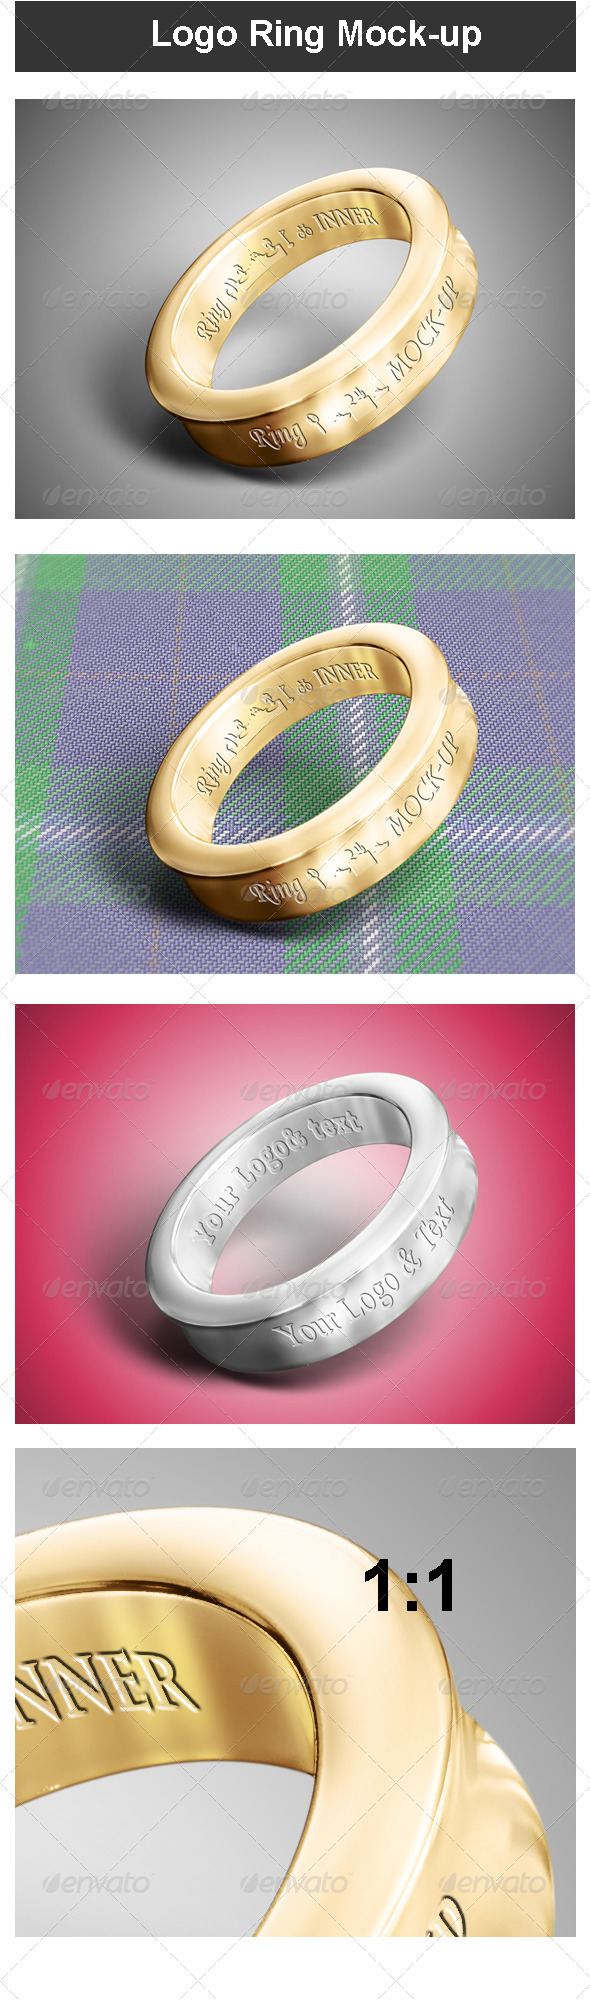 Logo Ring Mock-up - Logo Product Mock-Ups